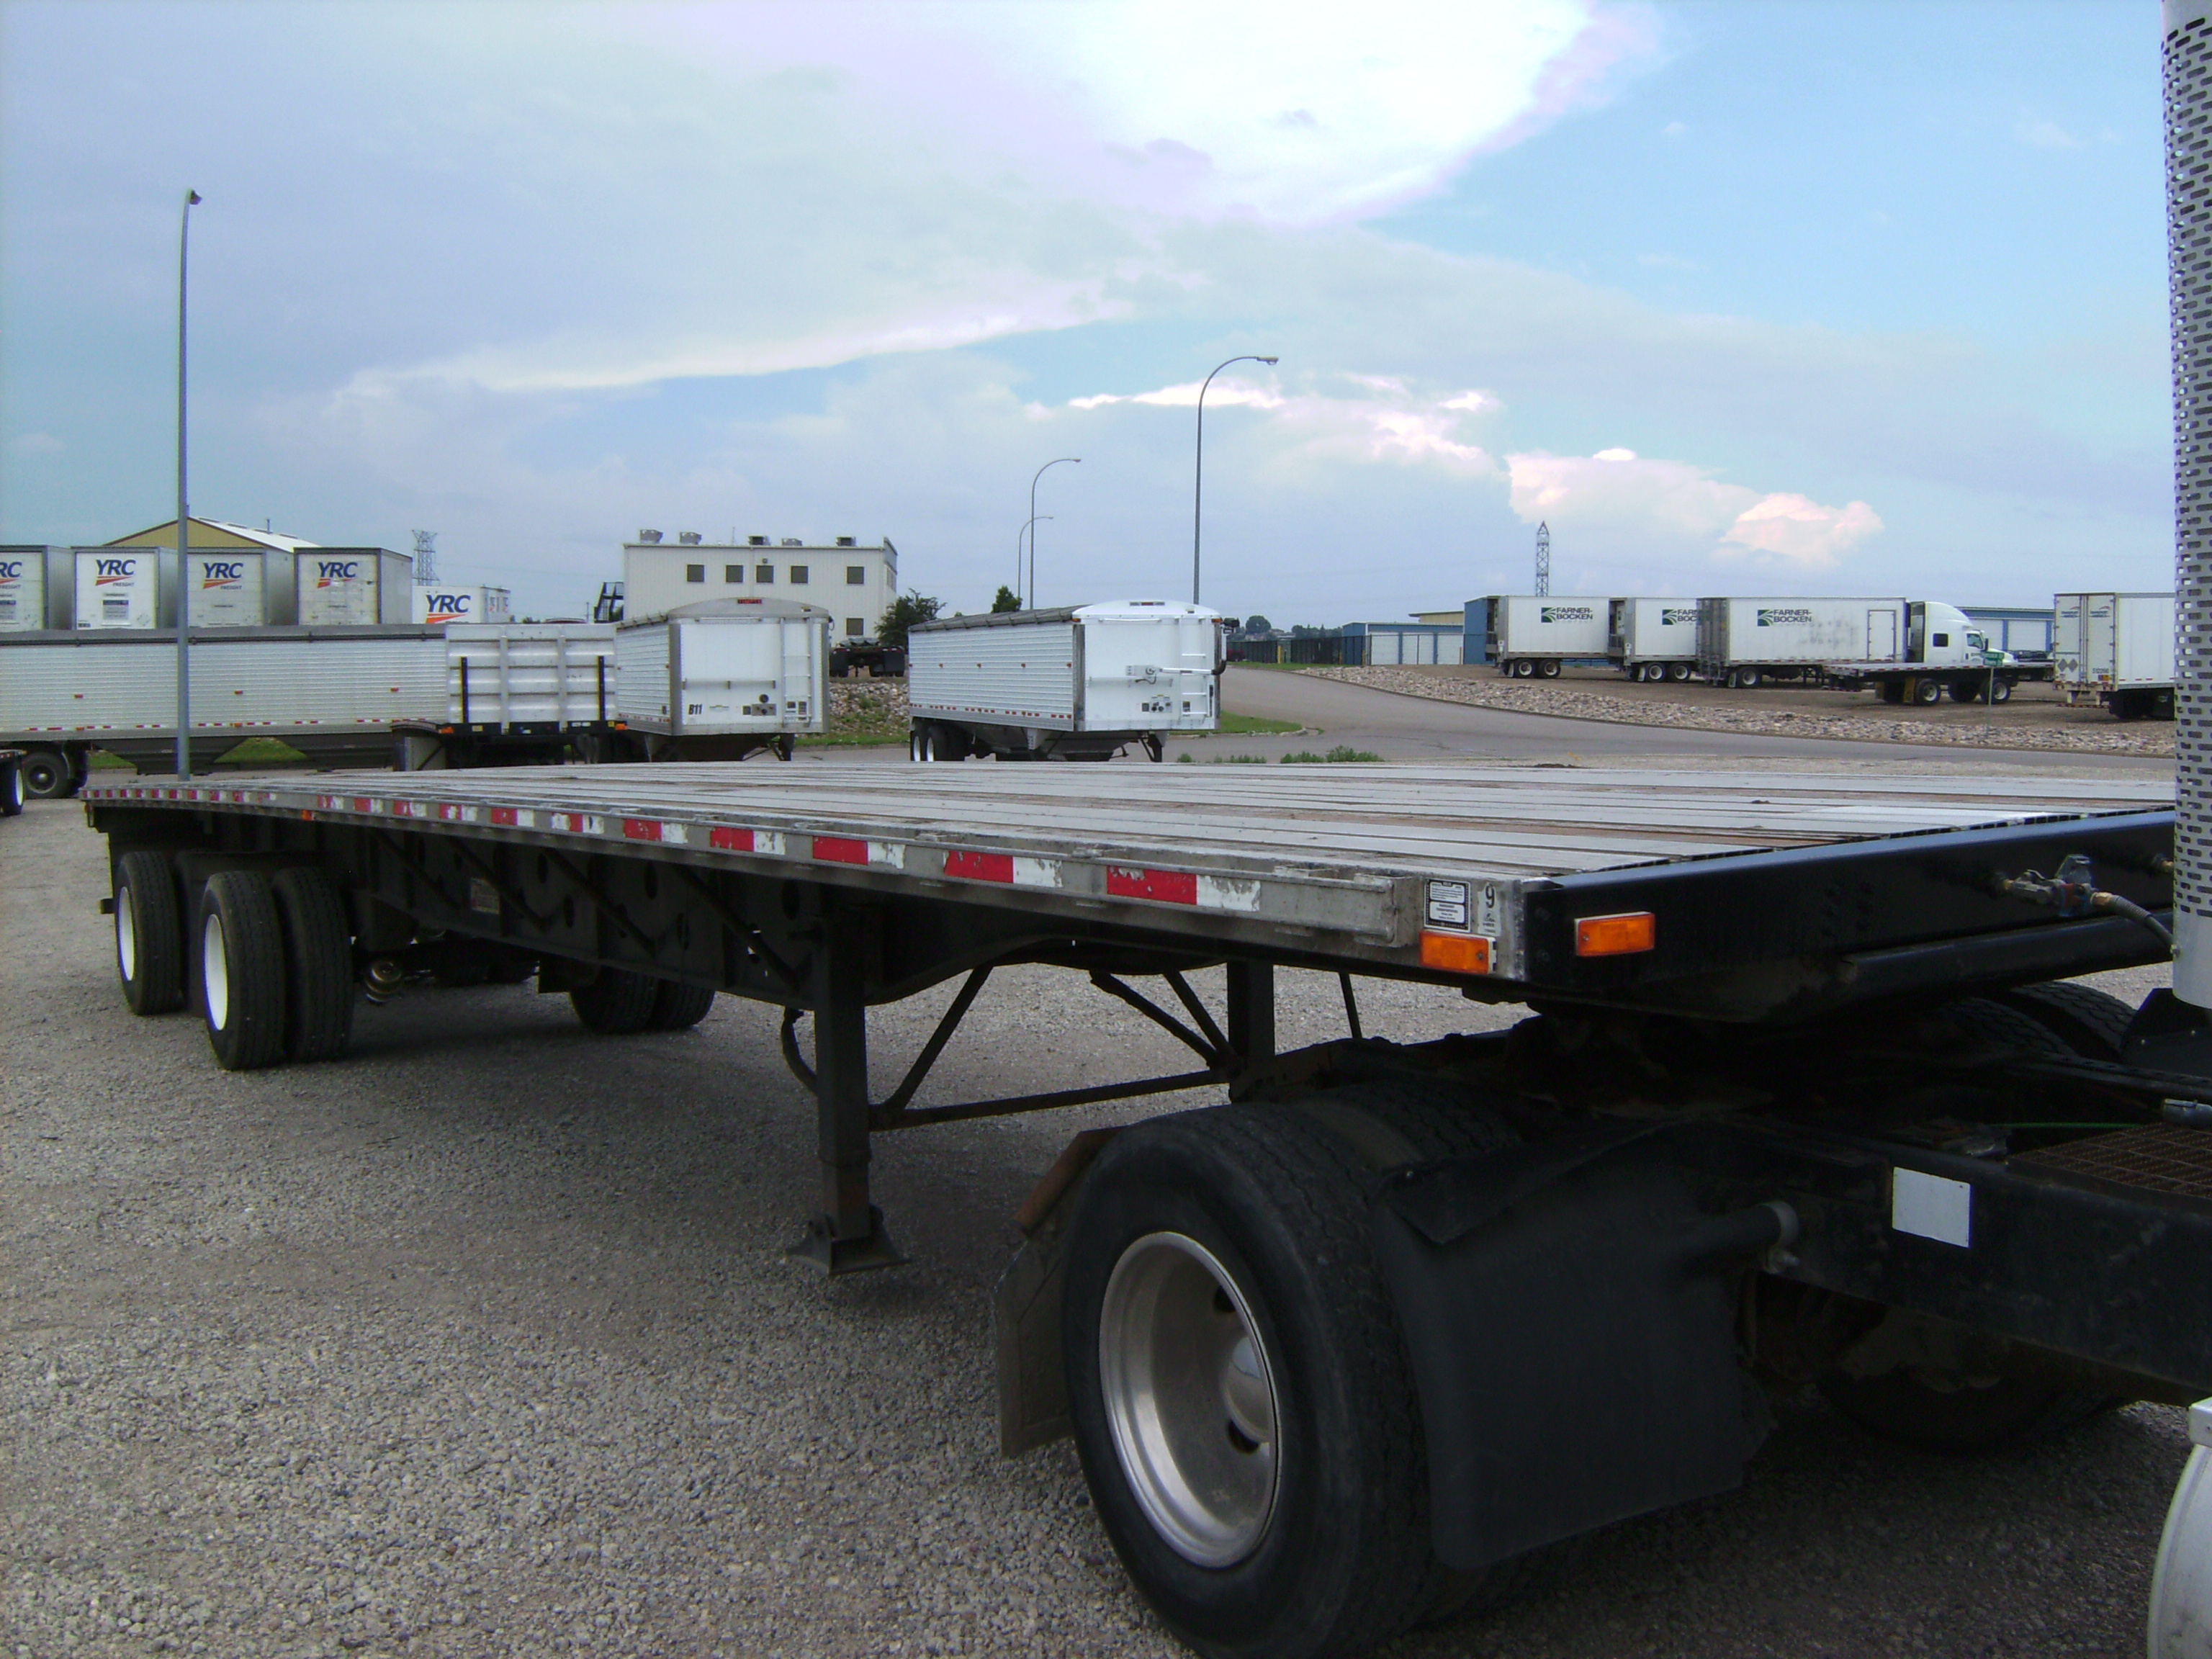 http://www.semitrailersalesandleasing.com/image/cache/2005_Transcraft_48x102_flatbed_012740_009.JPG Image